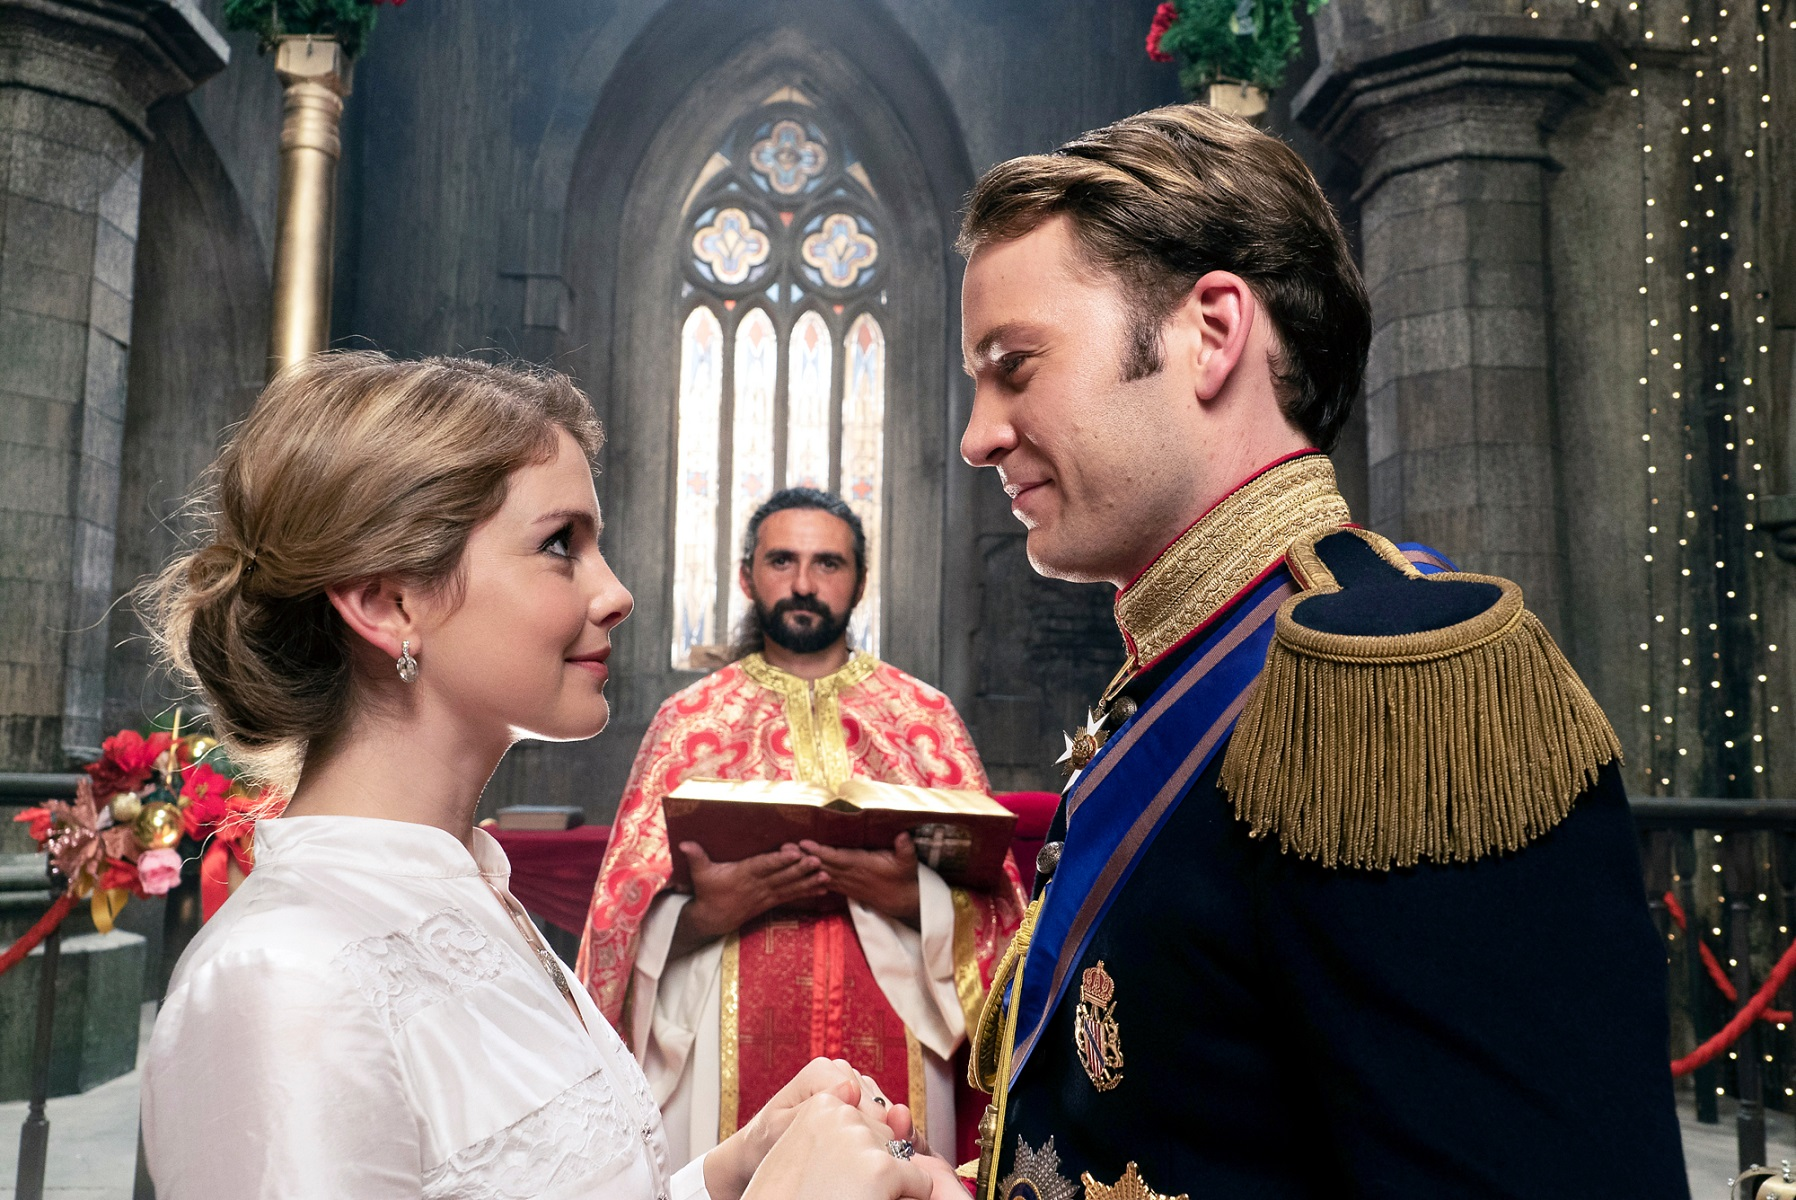 Netflix Confirms A Christmas Prince: The Royal Baby Is Coming Next Holiday Season